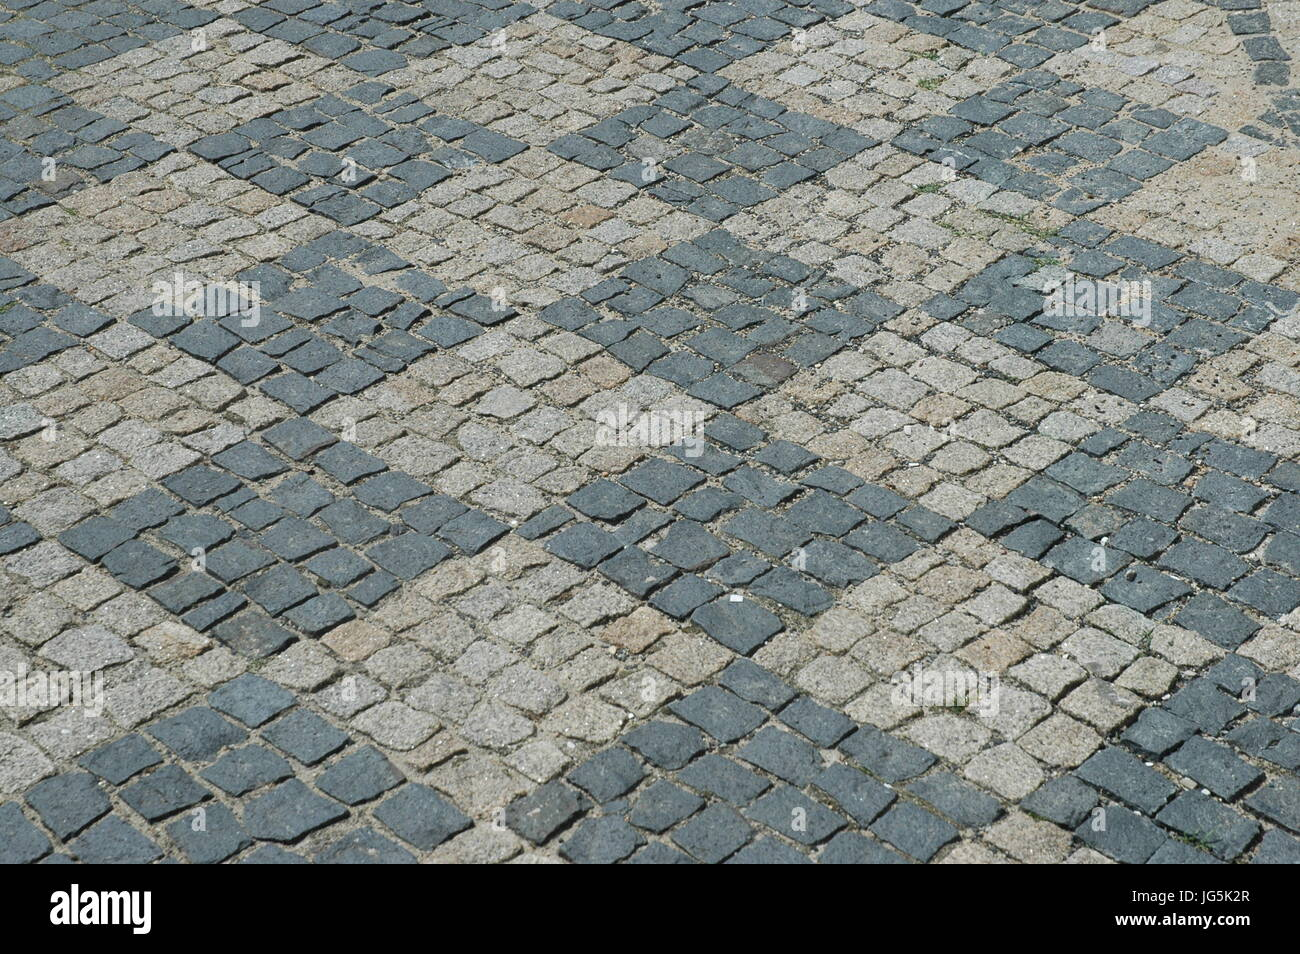 pavement with chequerboard pattern - Stock Image